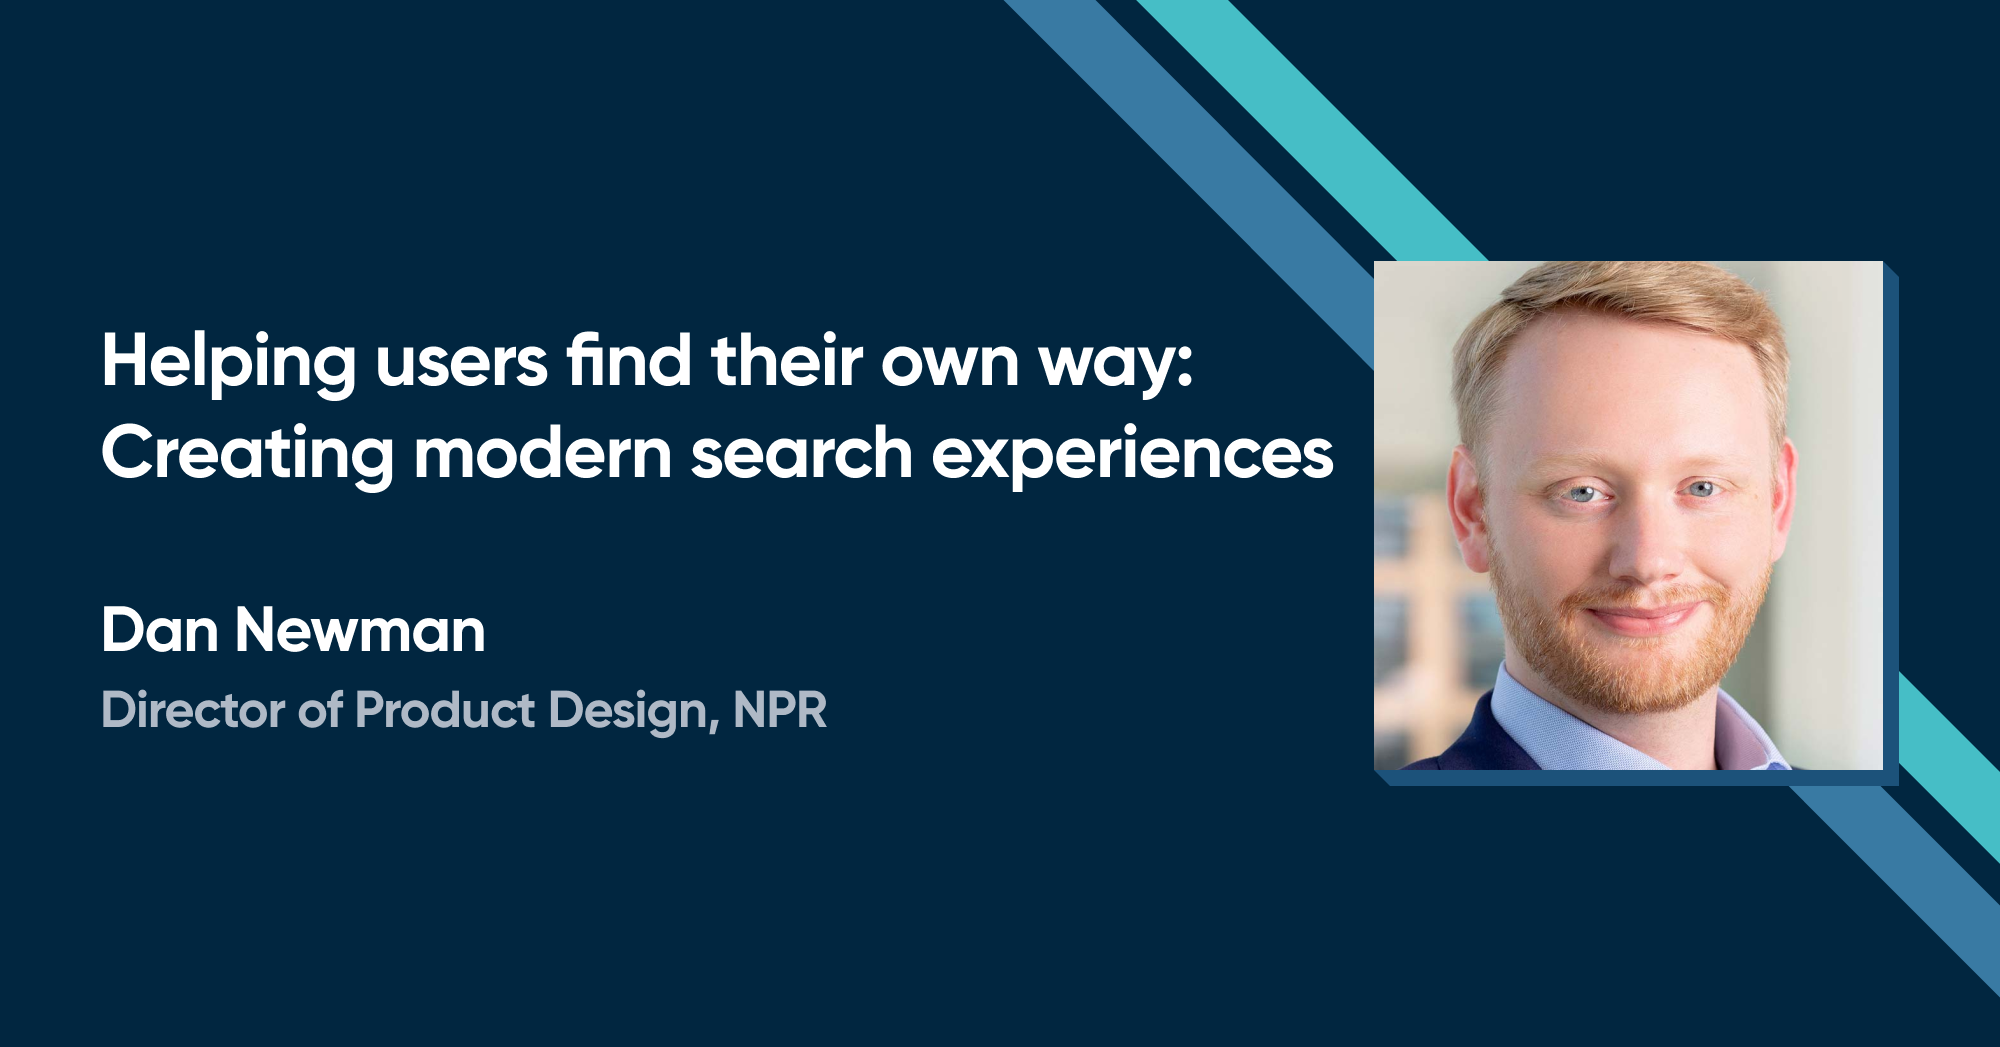 Daniel Newman - Helping users find their own way: Creating modern search experiences